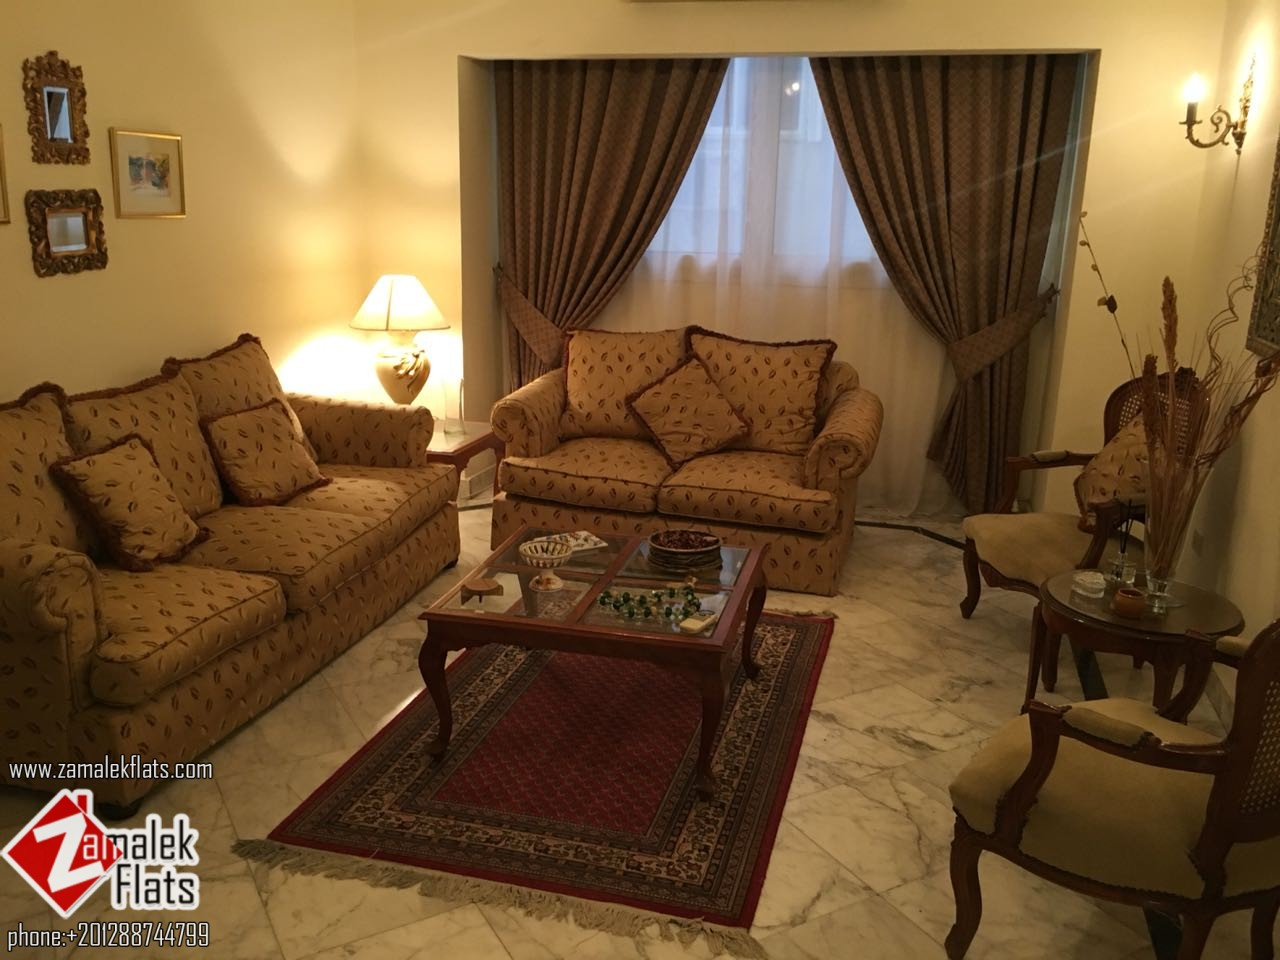 Cozy Apartment For Rent in South Zamalek